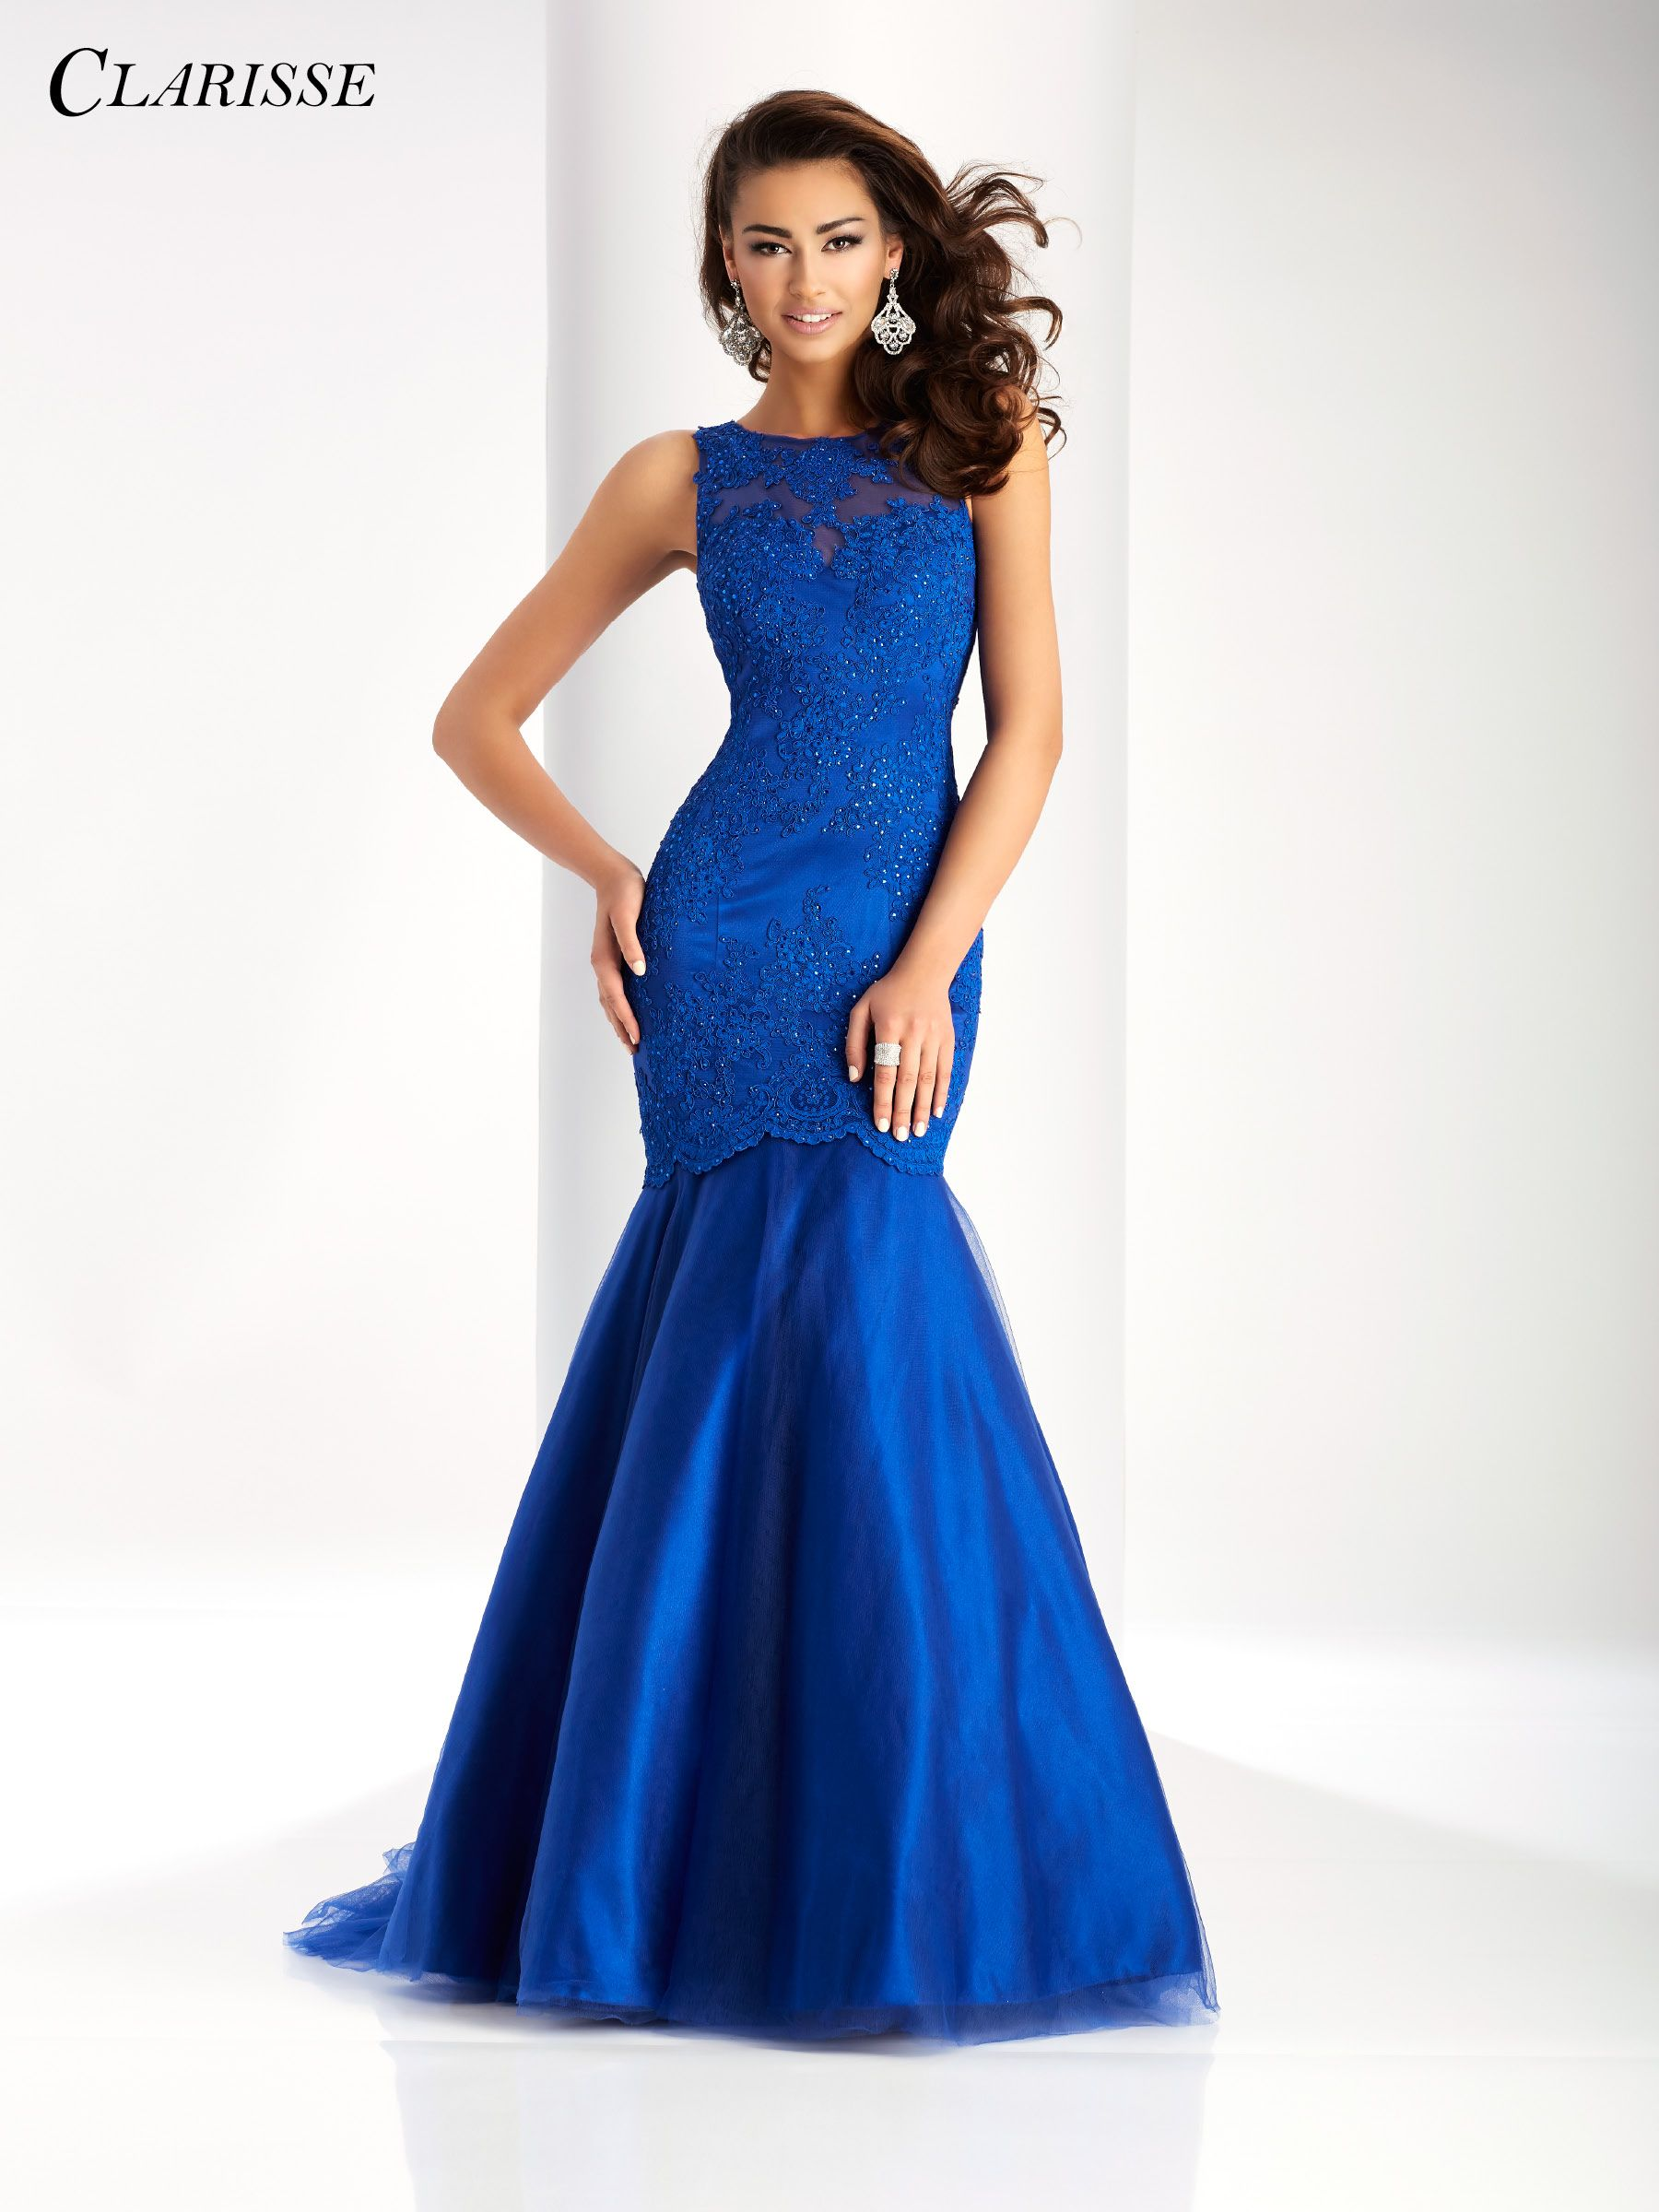 Pin by tracey on clarisse pinterest prom elegant gown and ball